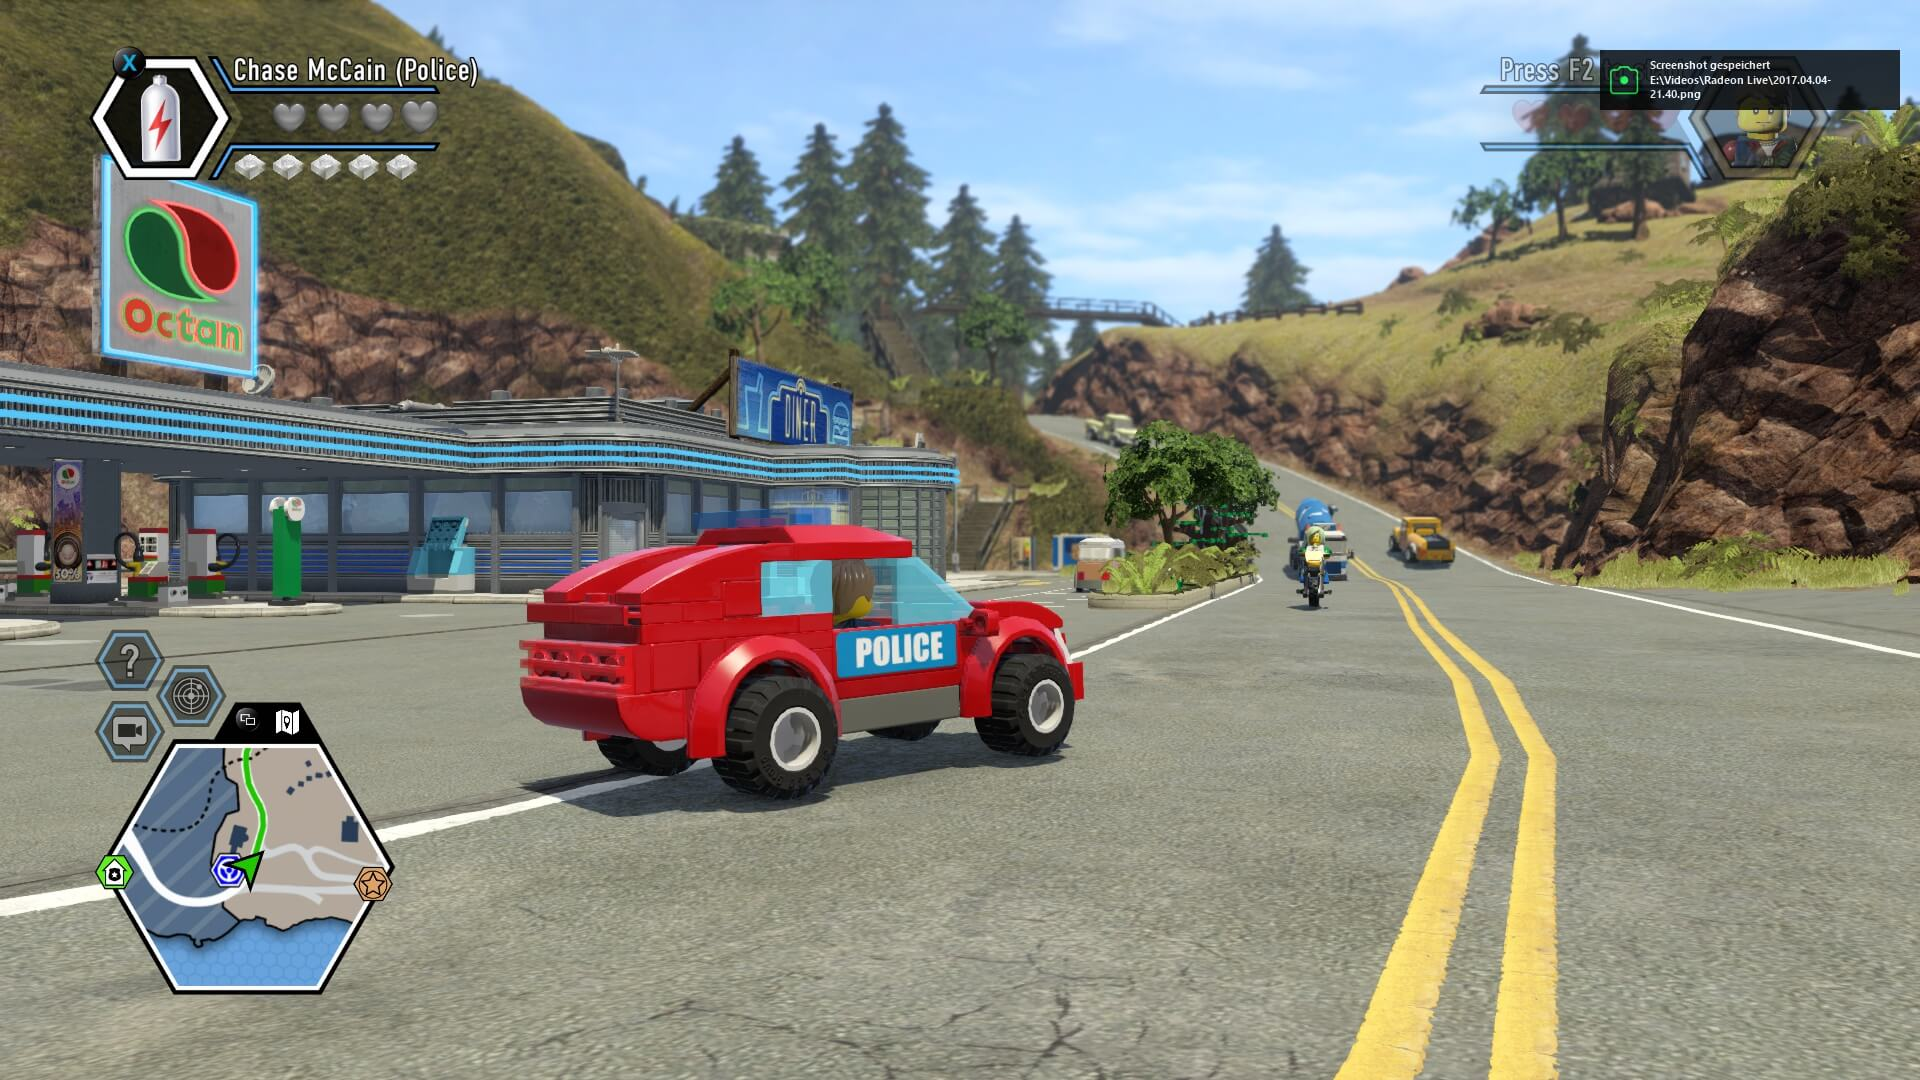 Lego City Undercover PC Download Updated Complete Free Full Version